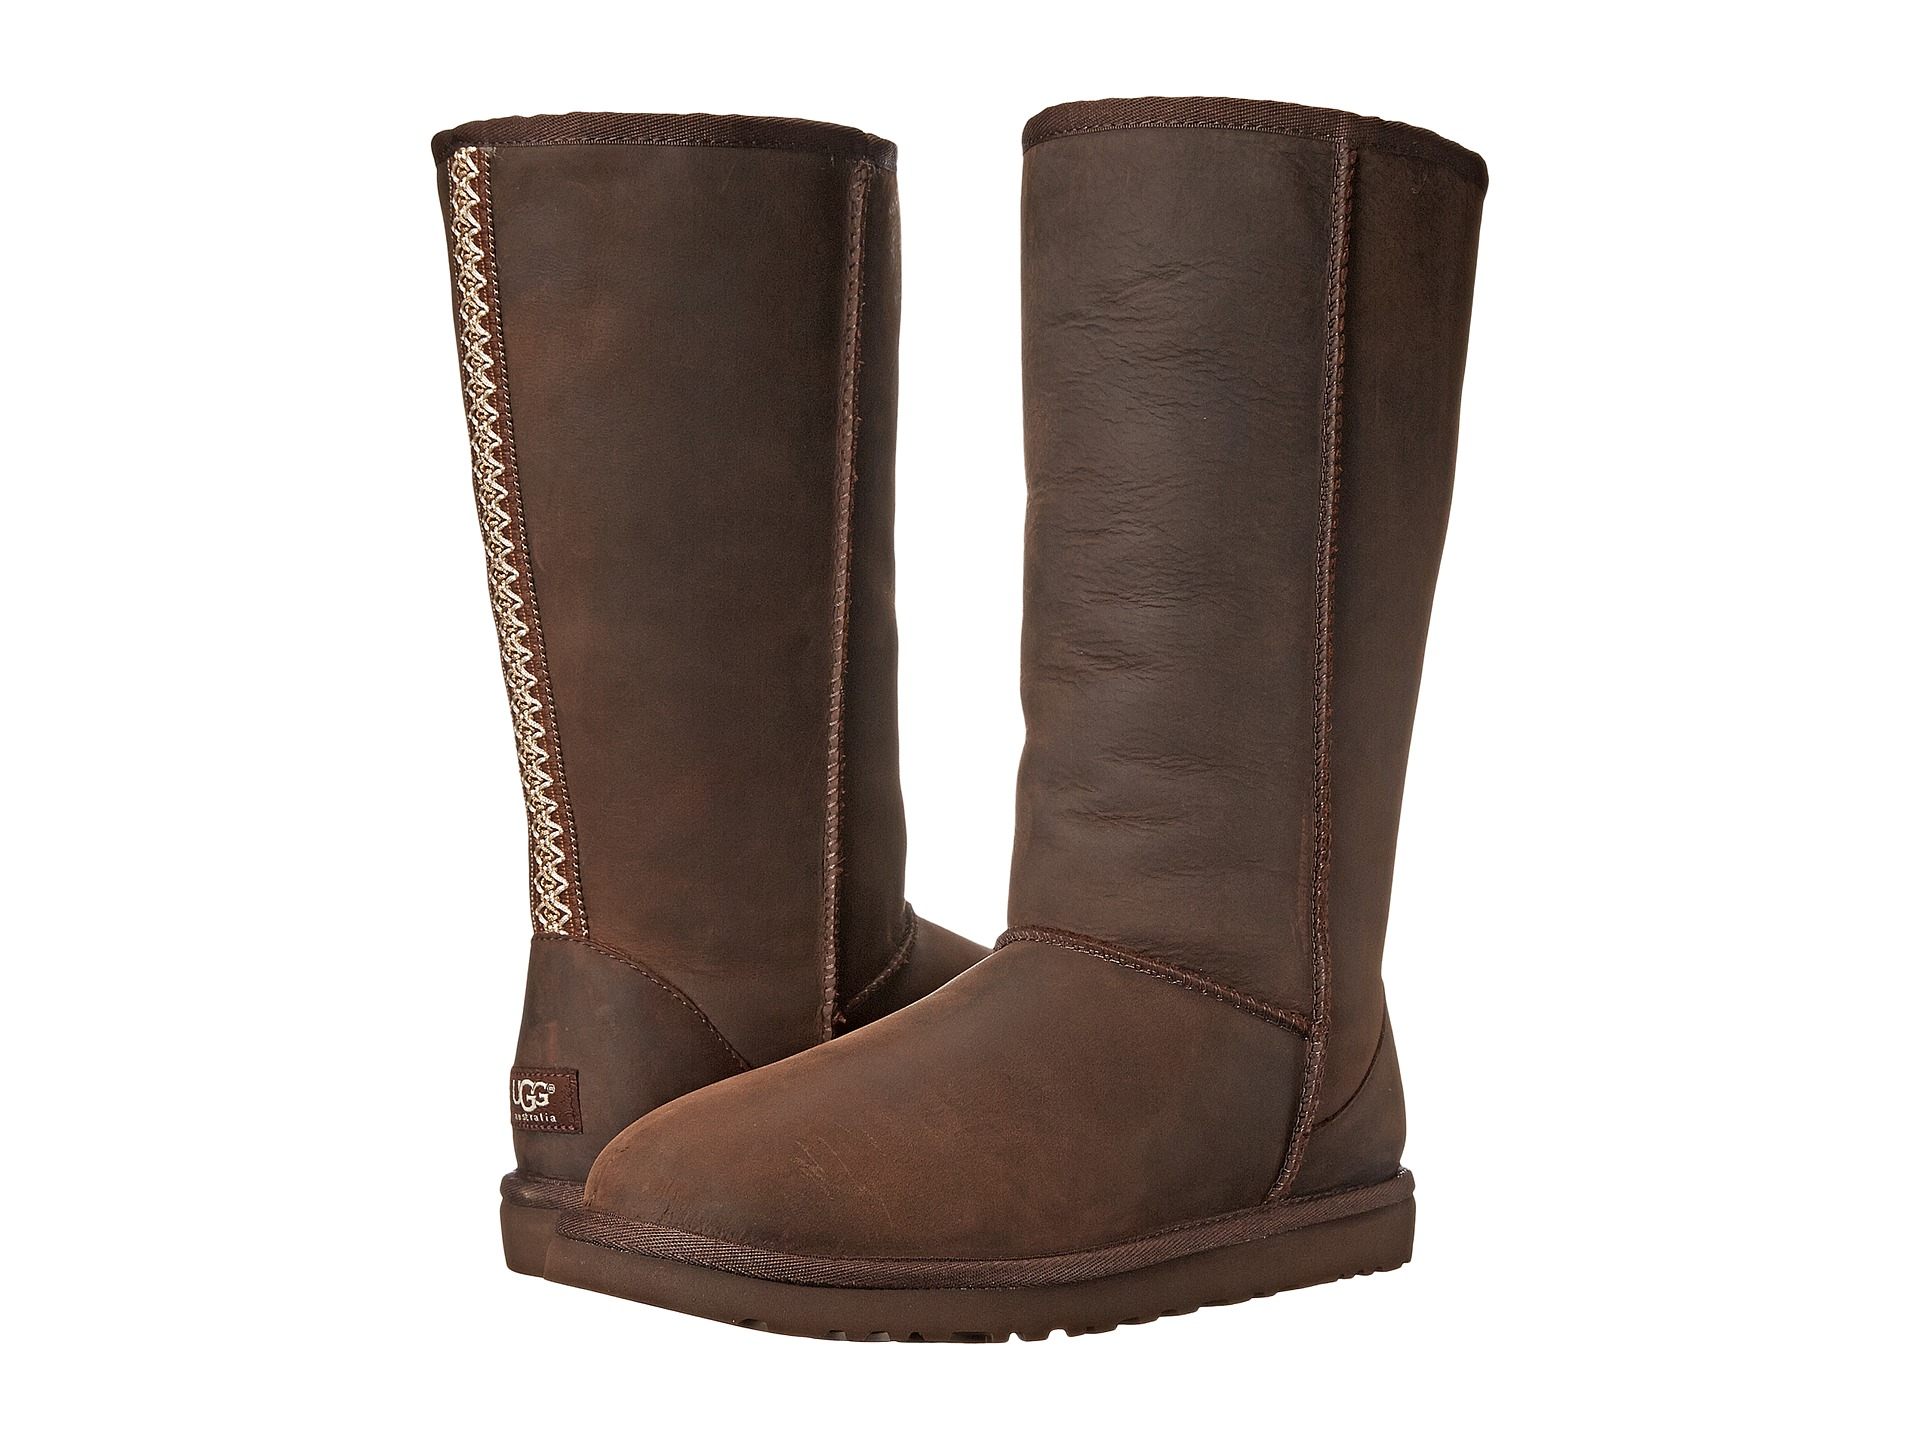 Discount UGG Holiday Sale: Save up to 65% Off backmicperpte.ml's huge selection of UGG boots, slippers, moccasins, and shoes! Over 90 styles available, including .